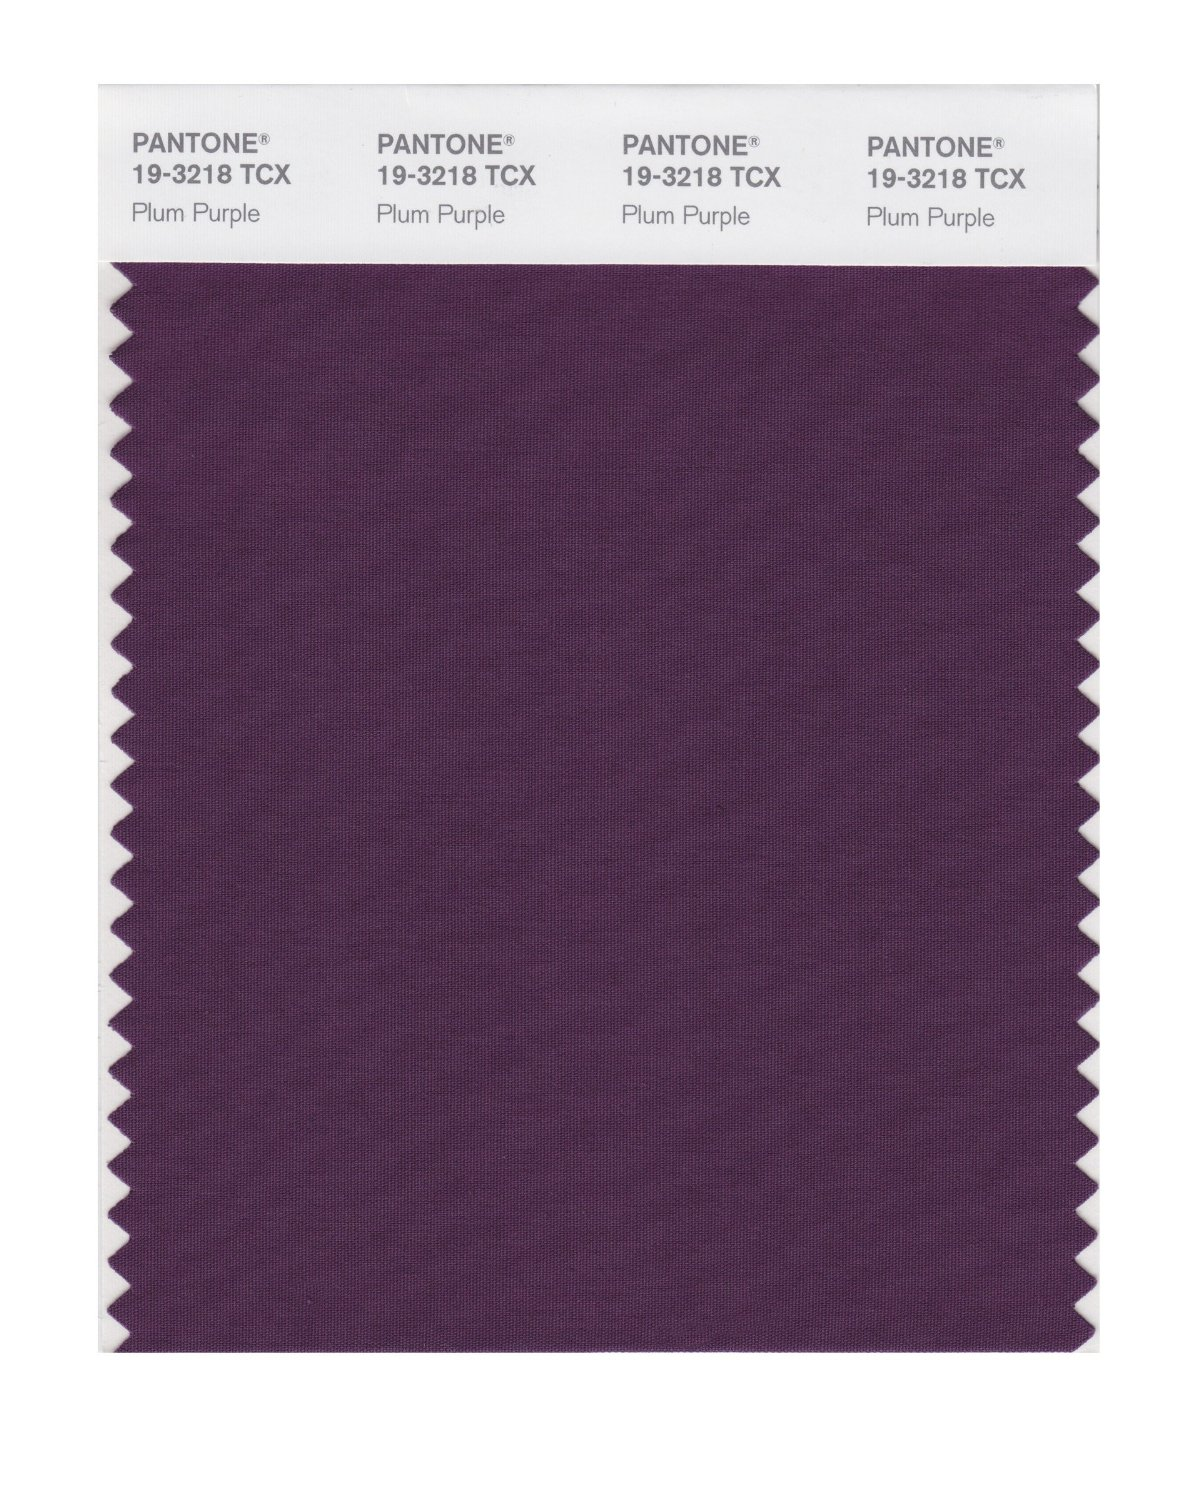 Pantone Smart Swatch 19-3218 Plum Purple